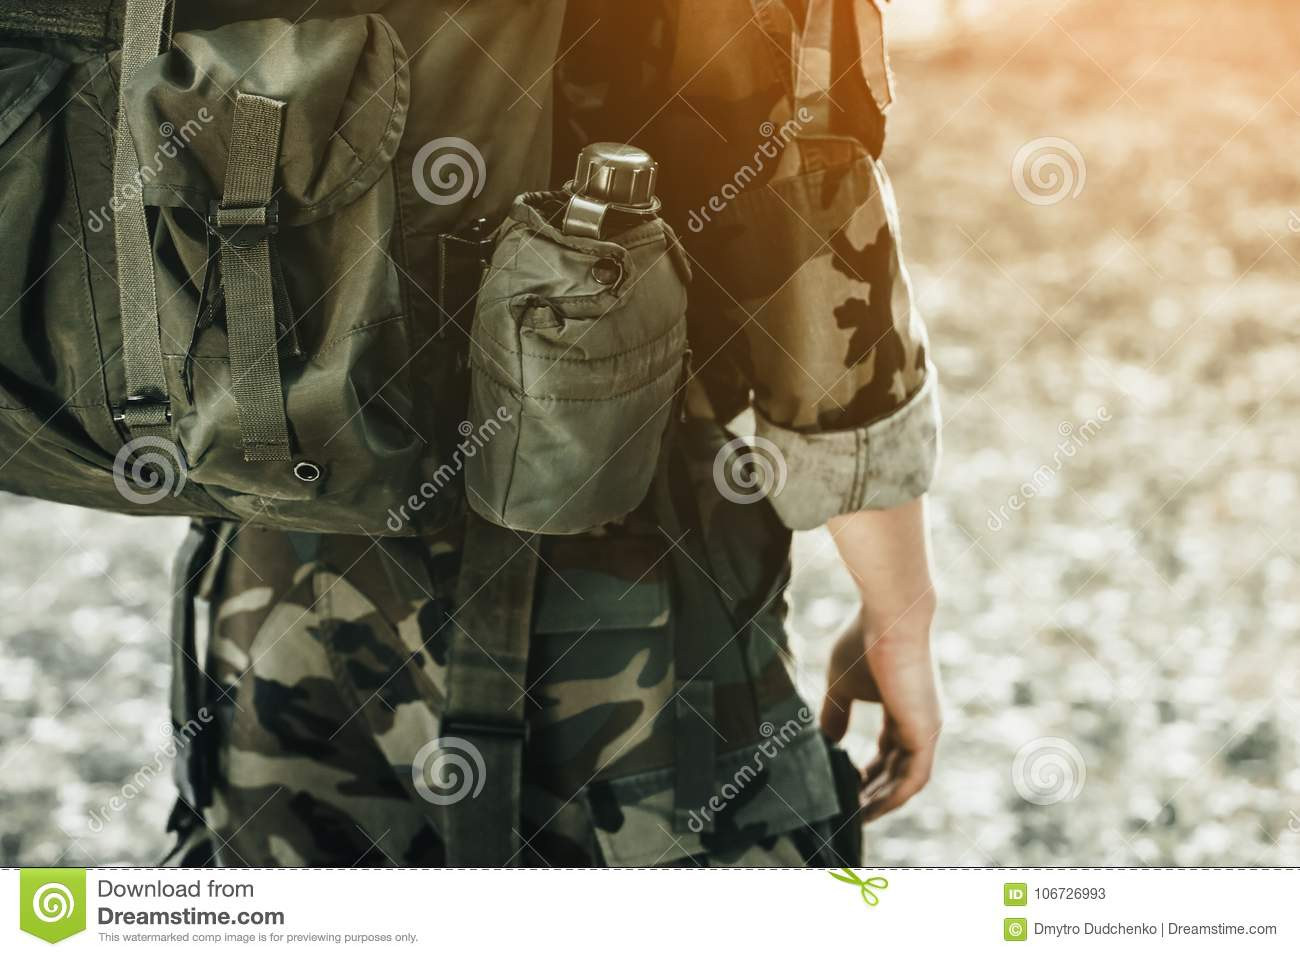 The soldier in the performance of tasks in camouflage.